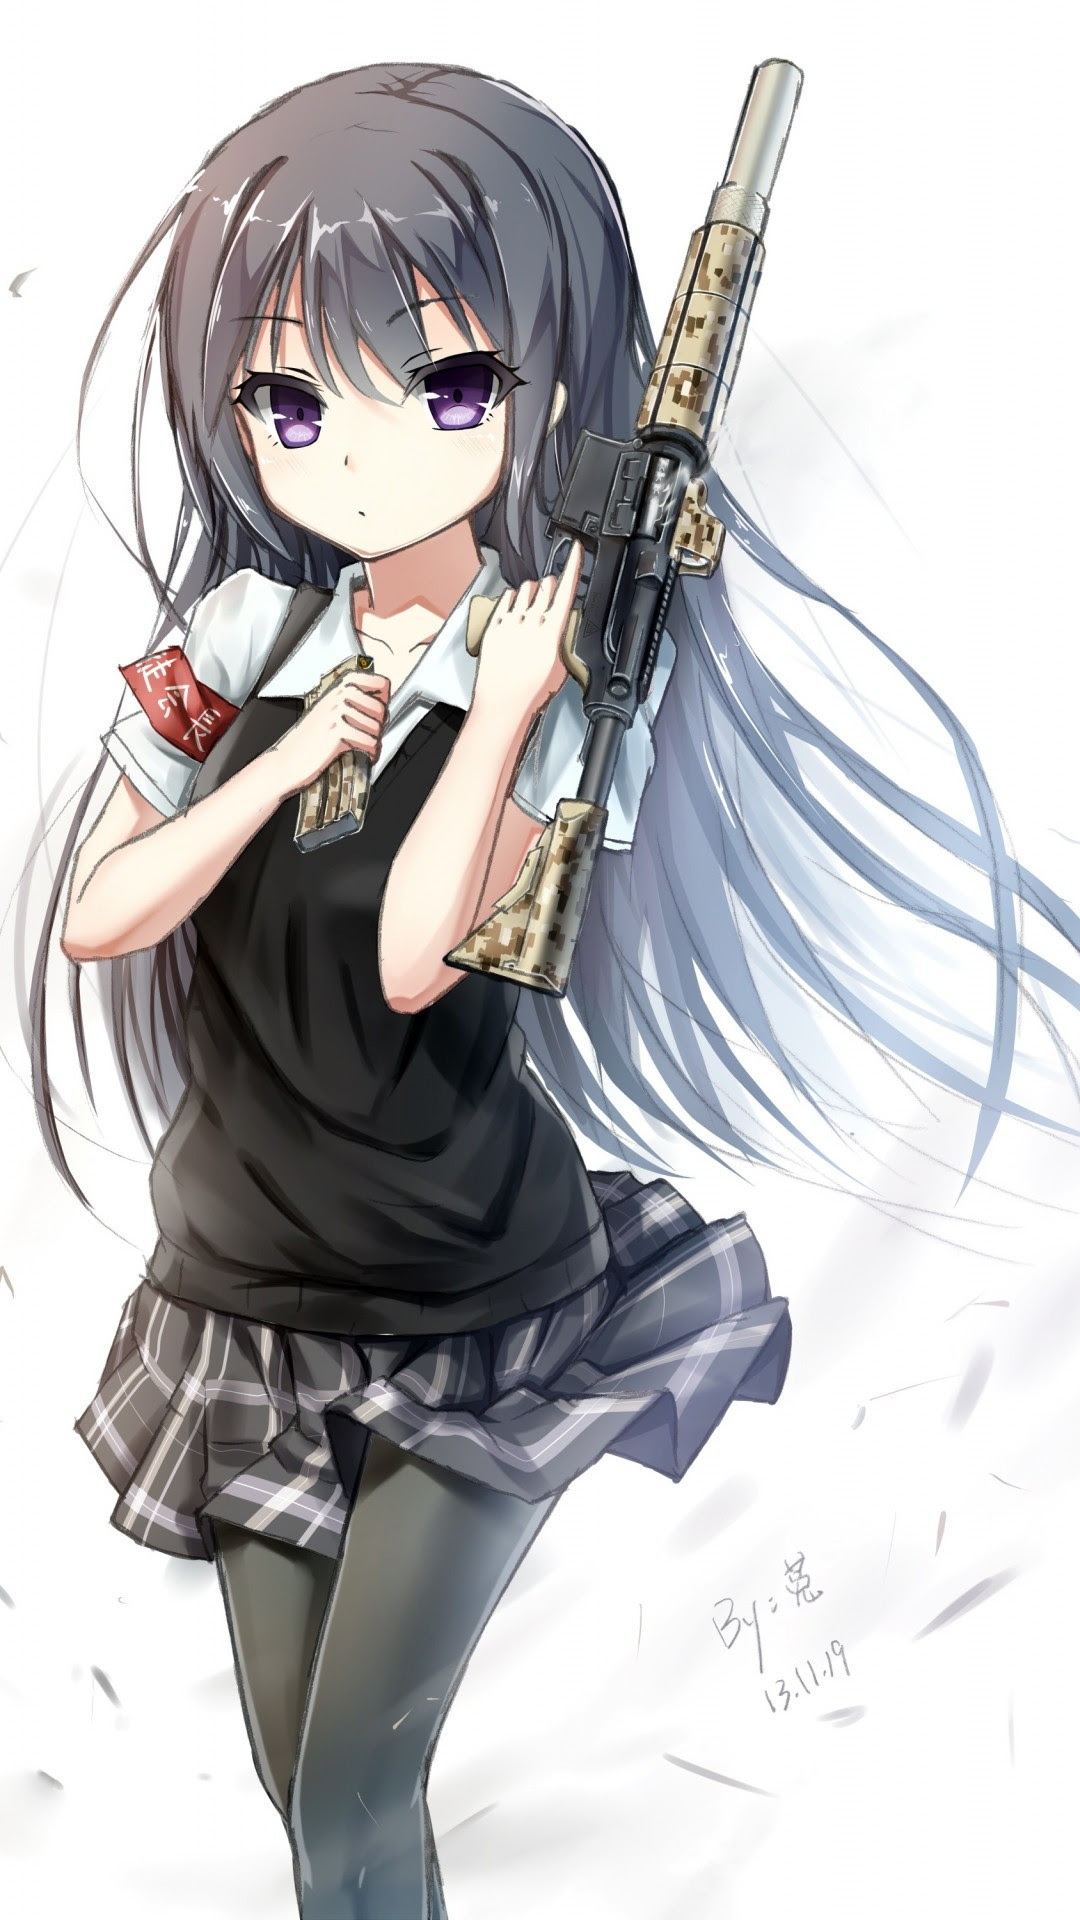 Download 1080x1920 Anime Girl, Weapon, Long Hair, M4a1 ...